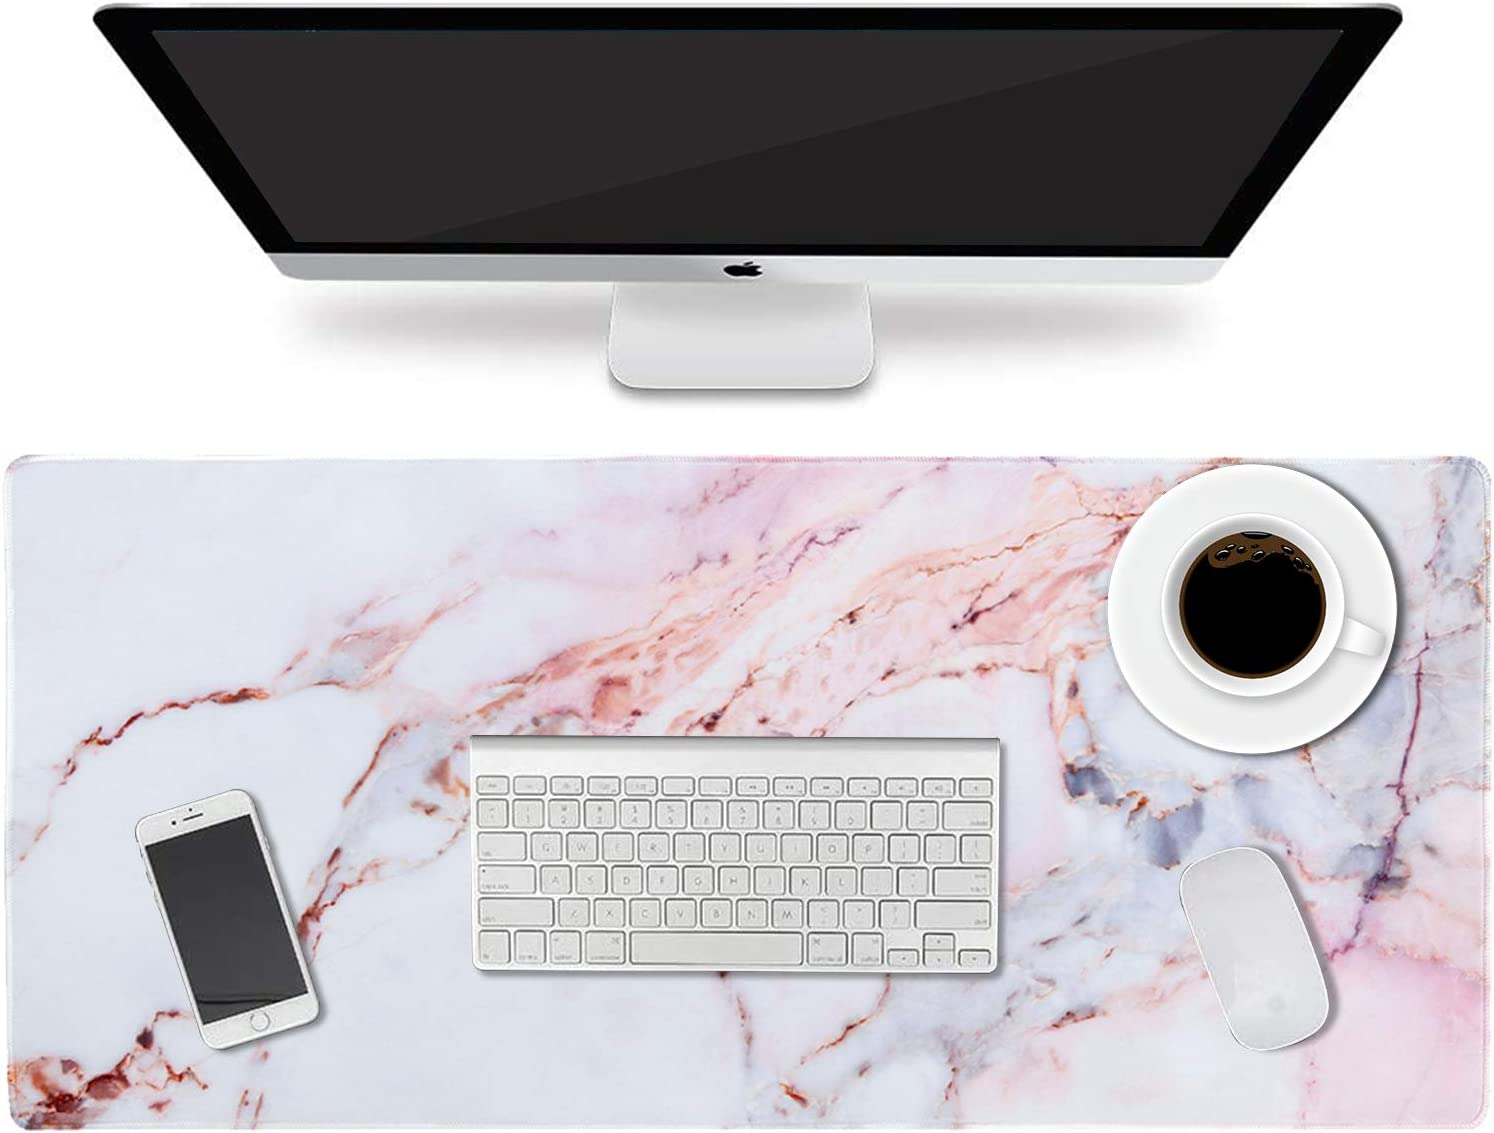 """HAOCOO Desk Pad, Office Desk Mat 35.4"""" ×15.7"""" Large Gaming Mouse Pad Durable Extended Computer Mouse Pad Water-Resistant Thick Writing Pads with Non-Slip Rubber Base for Office Home,Colorful Marble"""